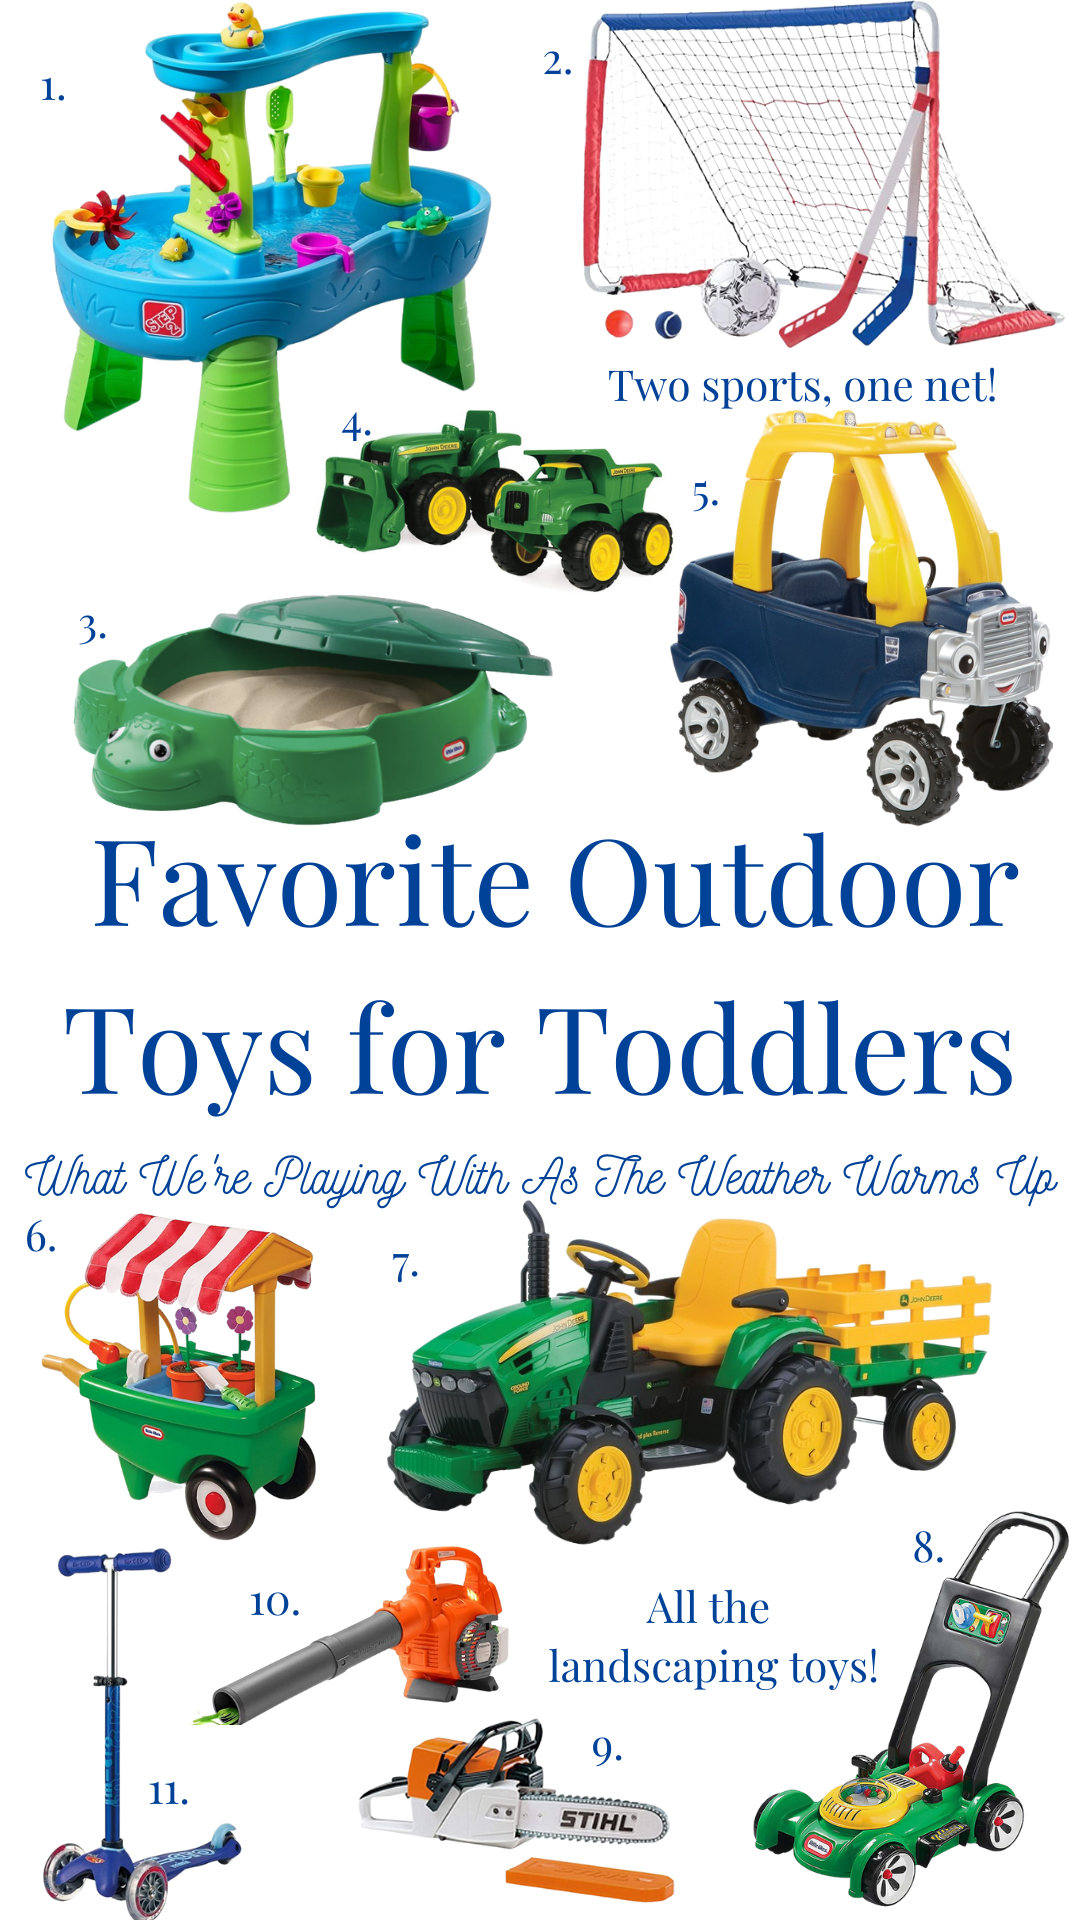 Our Favorite Outdoor Toys for Toddlers